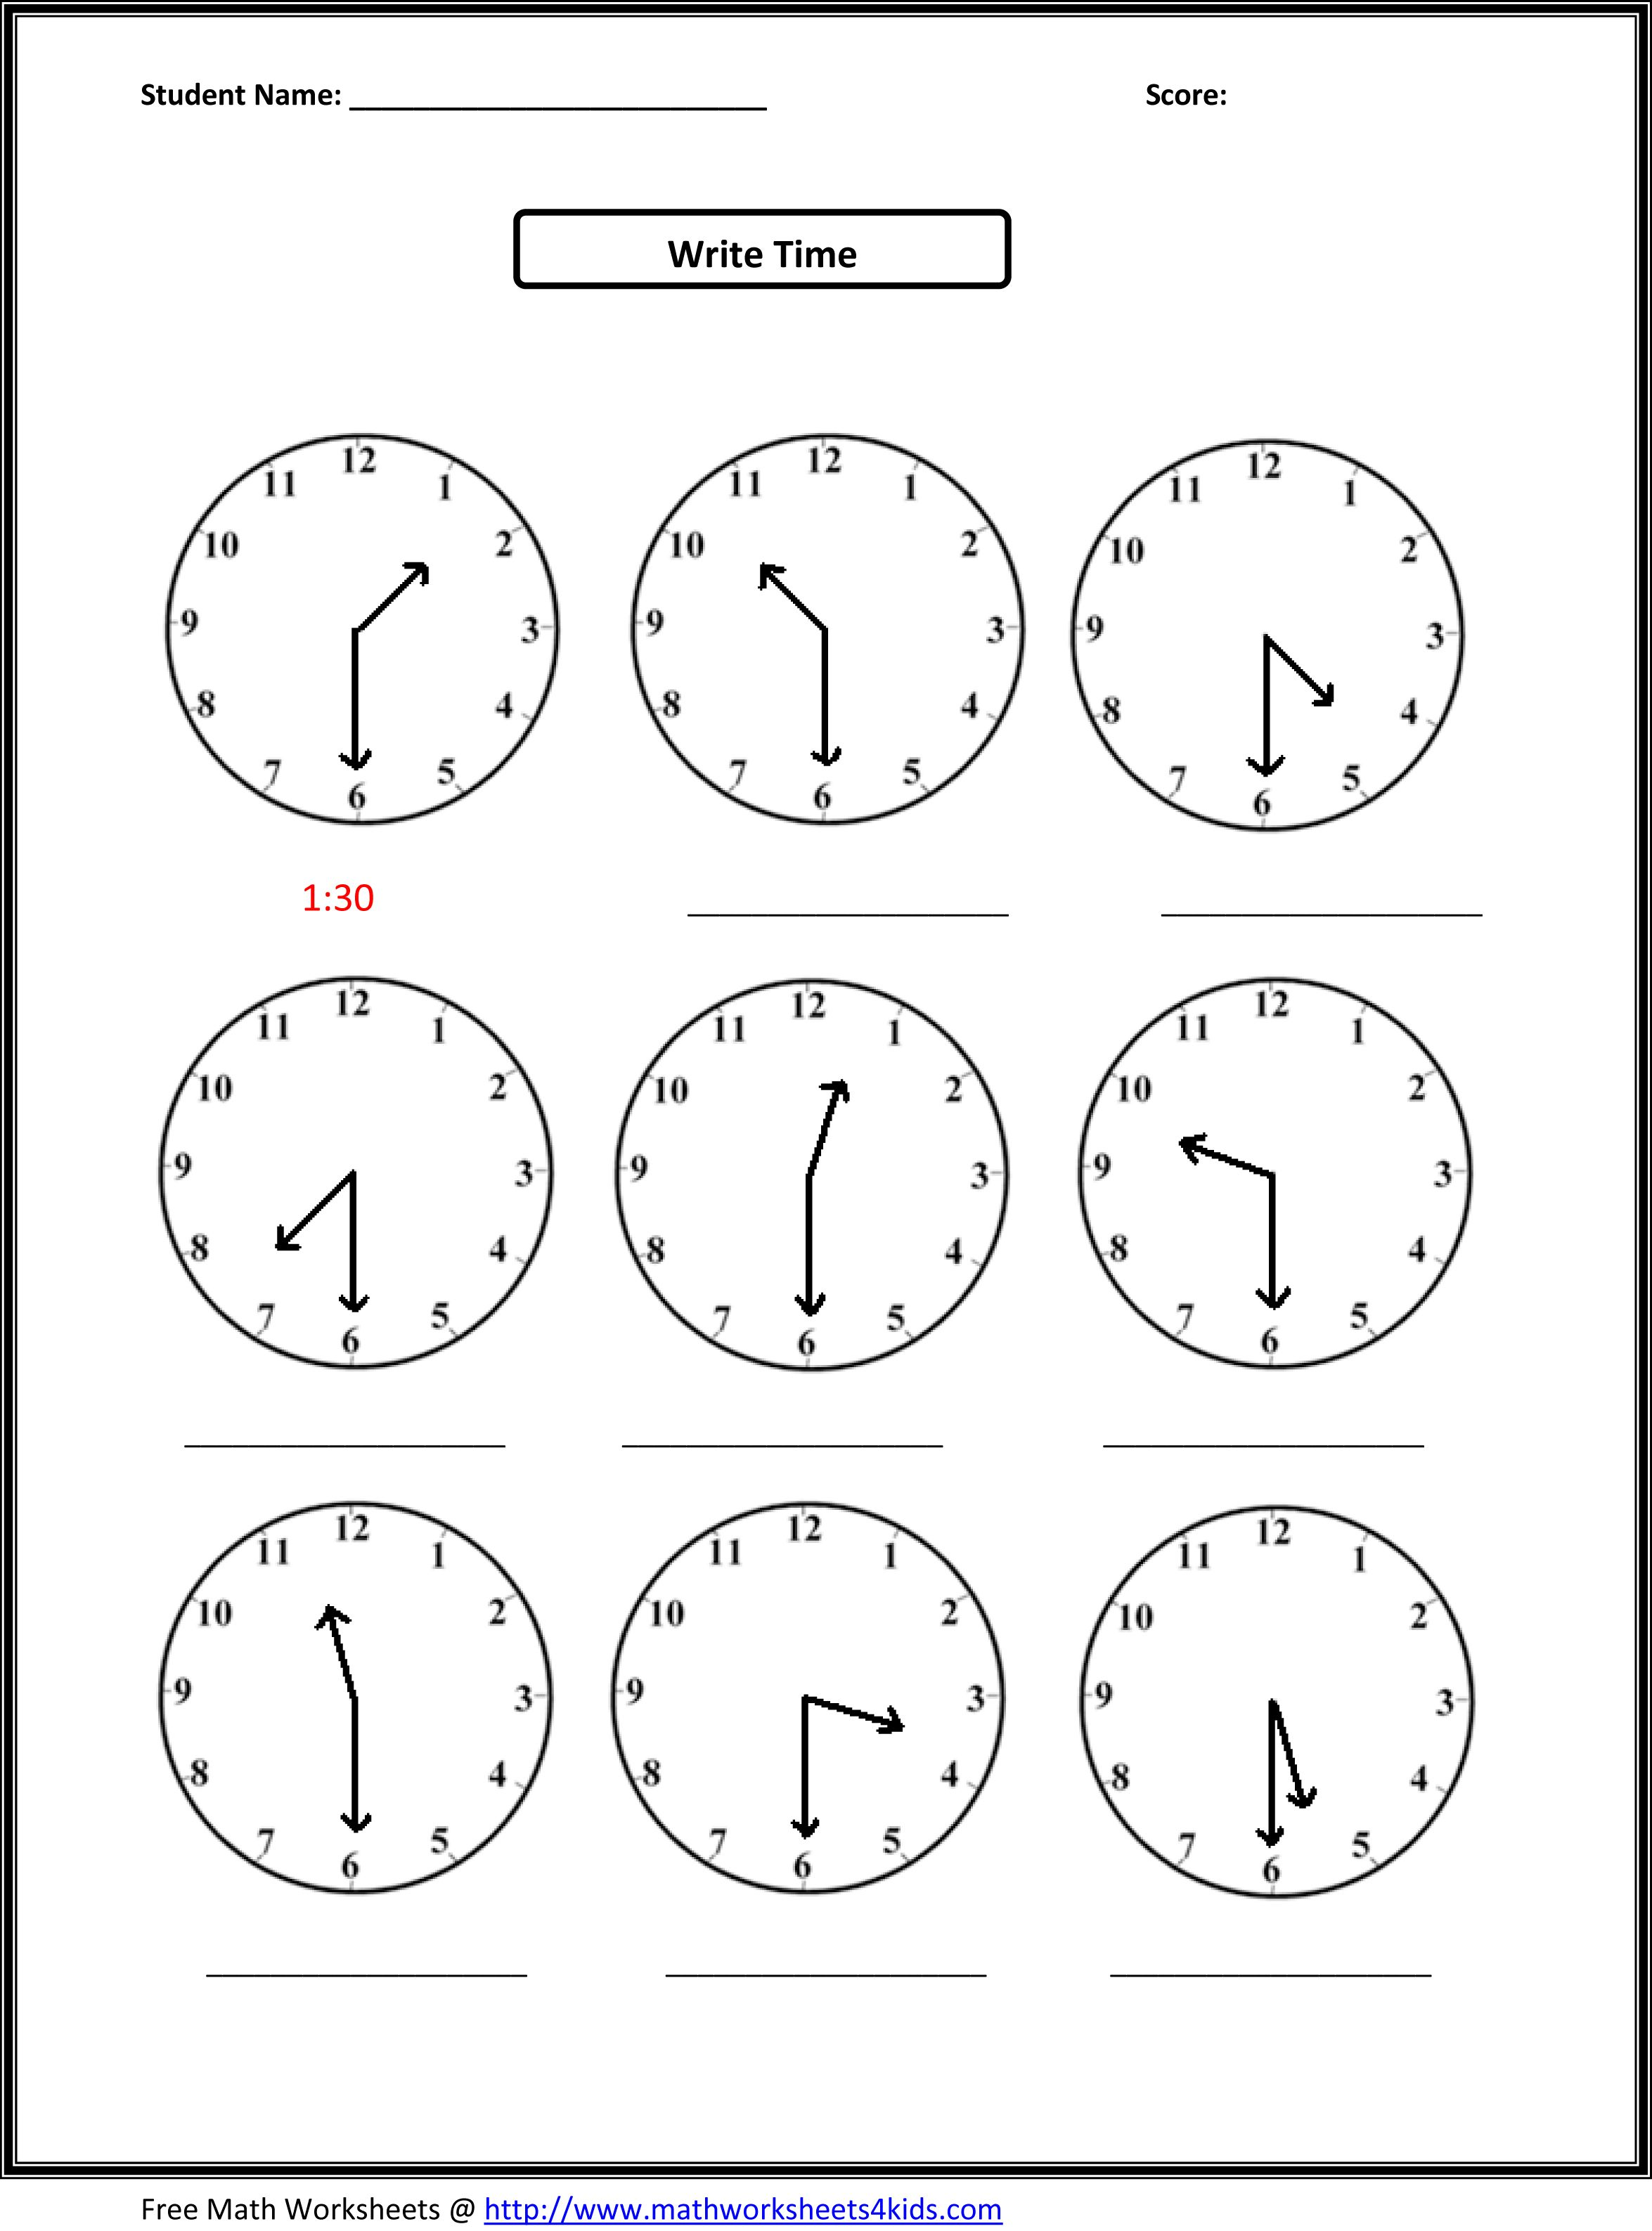 Proatmealus  Ravishing Worksheet On Time For Grade   Reocurent With Luxury Free Printable Telling Time Worksheets Nd Grade  Reocurent With Appealing Outer Planets Worksheet Also Rounding To The Nearest Hundredth Worksheets In Addition Simple Addition Worksheets For Kindergarten And Free Money Math Worksheets As Well As Free Kindergarten Worksheets Printable Additionally Printable Math Worksheets Rd Grade From Reocurentcom With Proatmealus  Luxury Worksheet On Time For Grade   Reocurent With Appealing Free Printable Telling Time Worksheets Nd Grade  Reocurent And Ravishing Outer Planets Worksheet Also Rounding To The Nearest Hundredth Worksheets In Addition Simple Addition Worksheets For Kindergarten From Reocurentcom